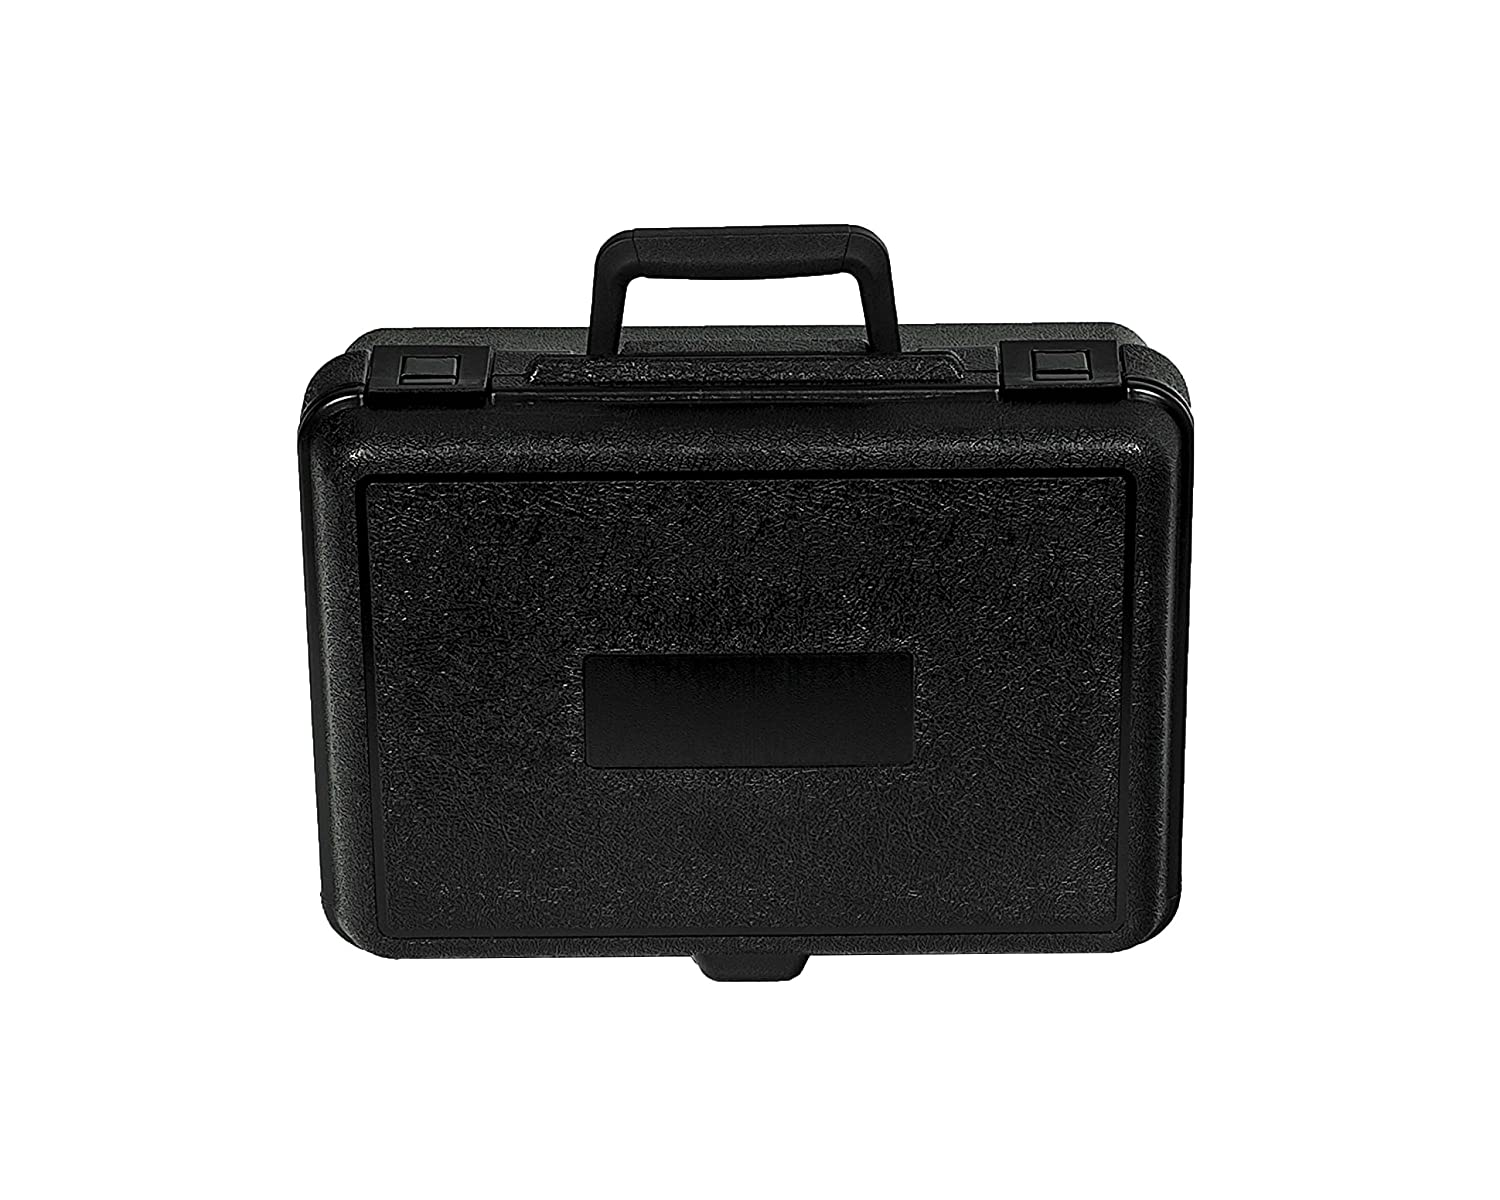 "PFC 135-100-044-5SF Plastic Carrying Case, 13 1/2"" x 10"" x 4 3/8"", Black"